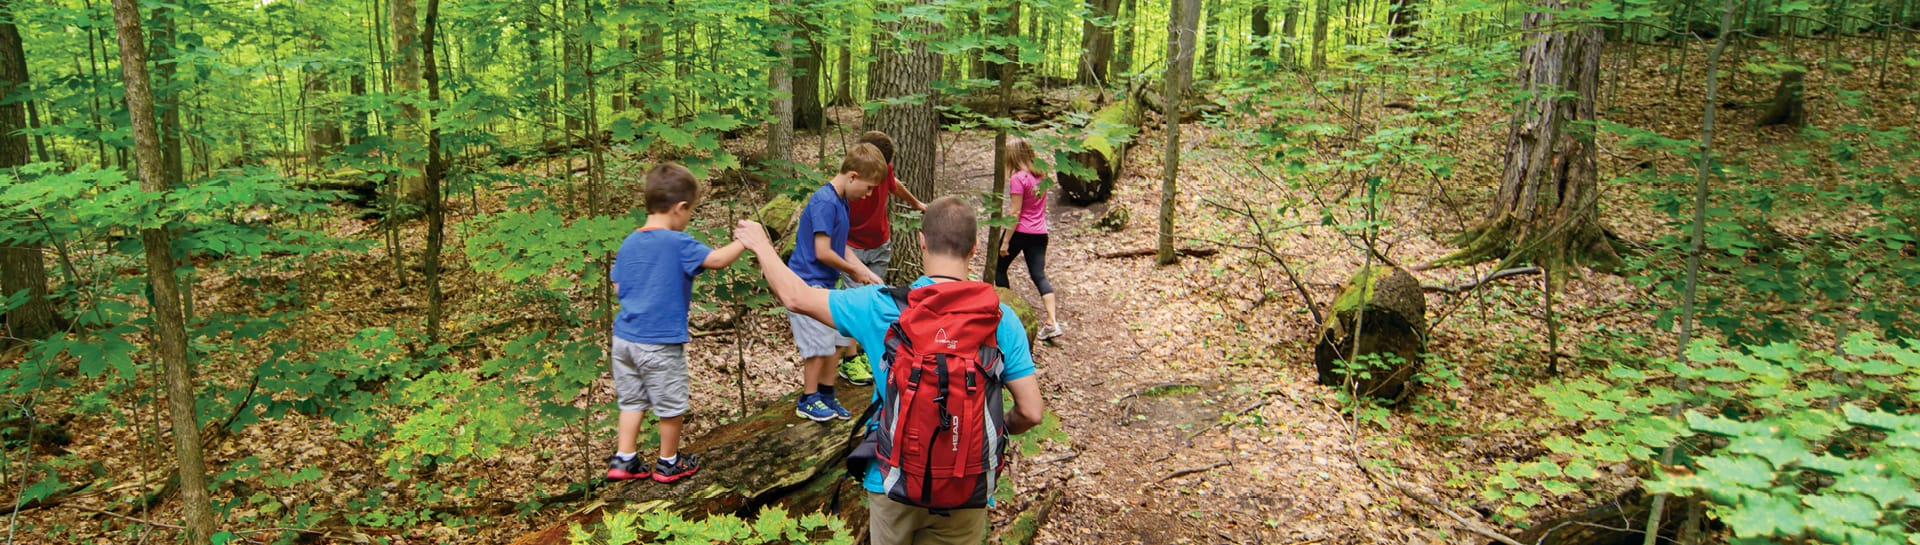 Family with three boys walking on log in wooded trail